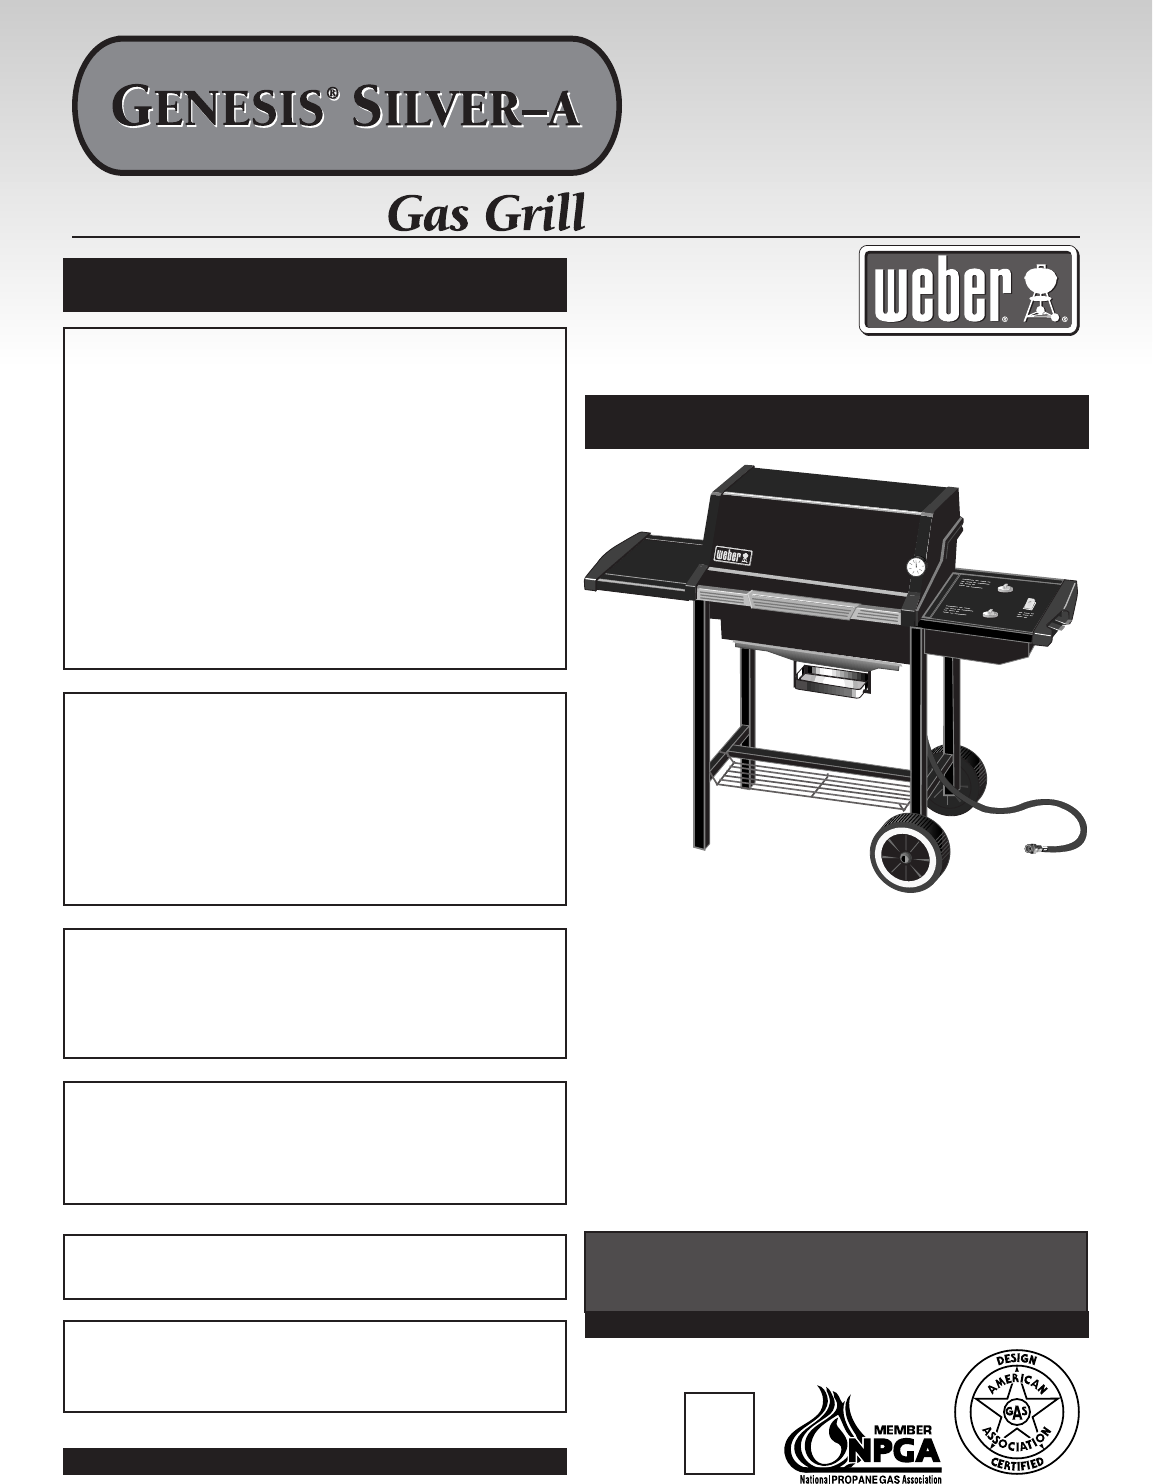 weber gas grill silver a user guide. Black Bedroom Furniture Sets. Home Design Ideas